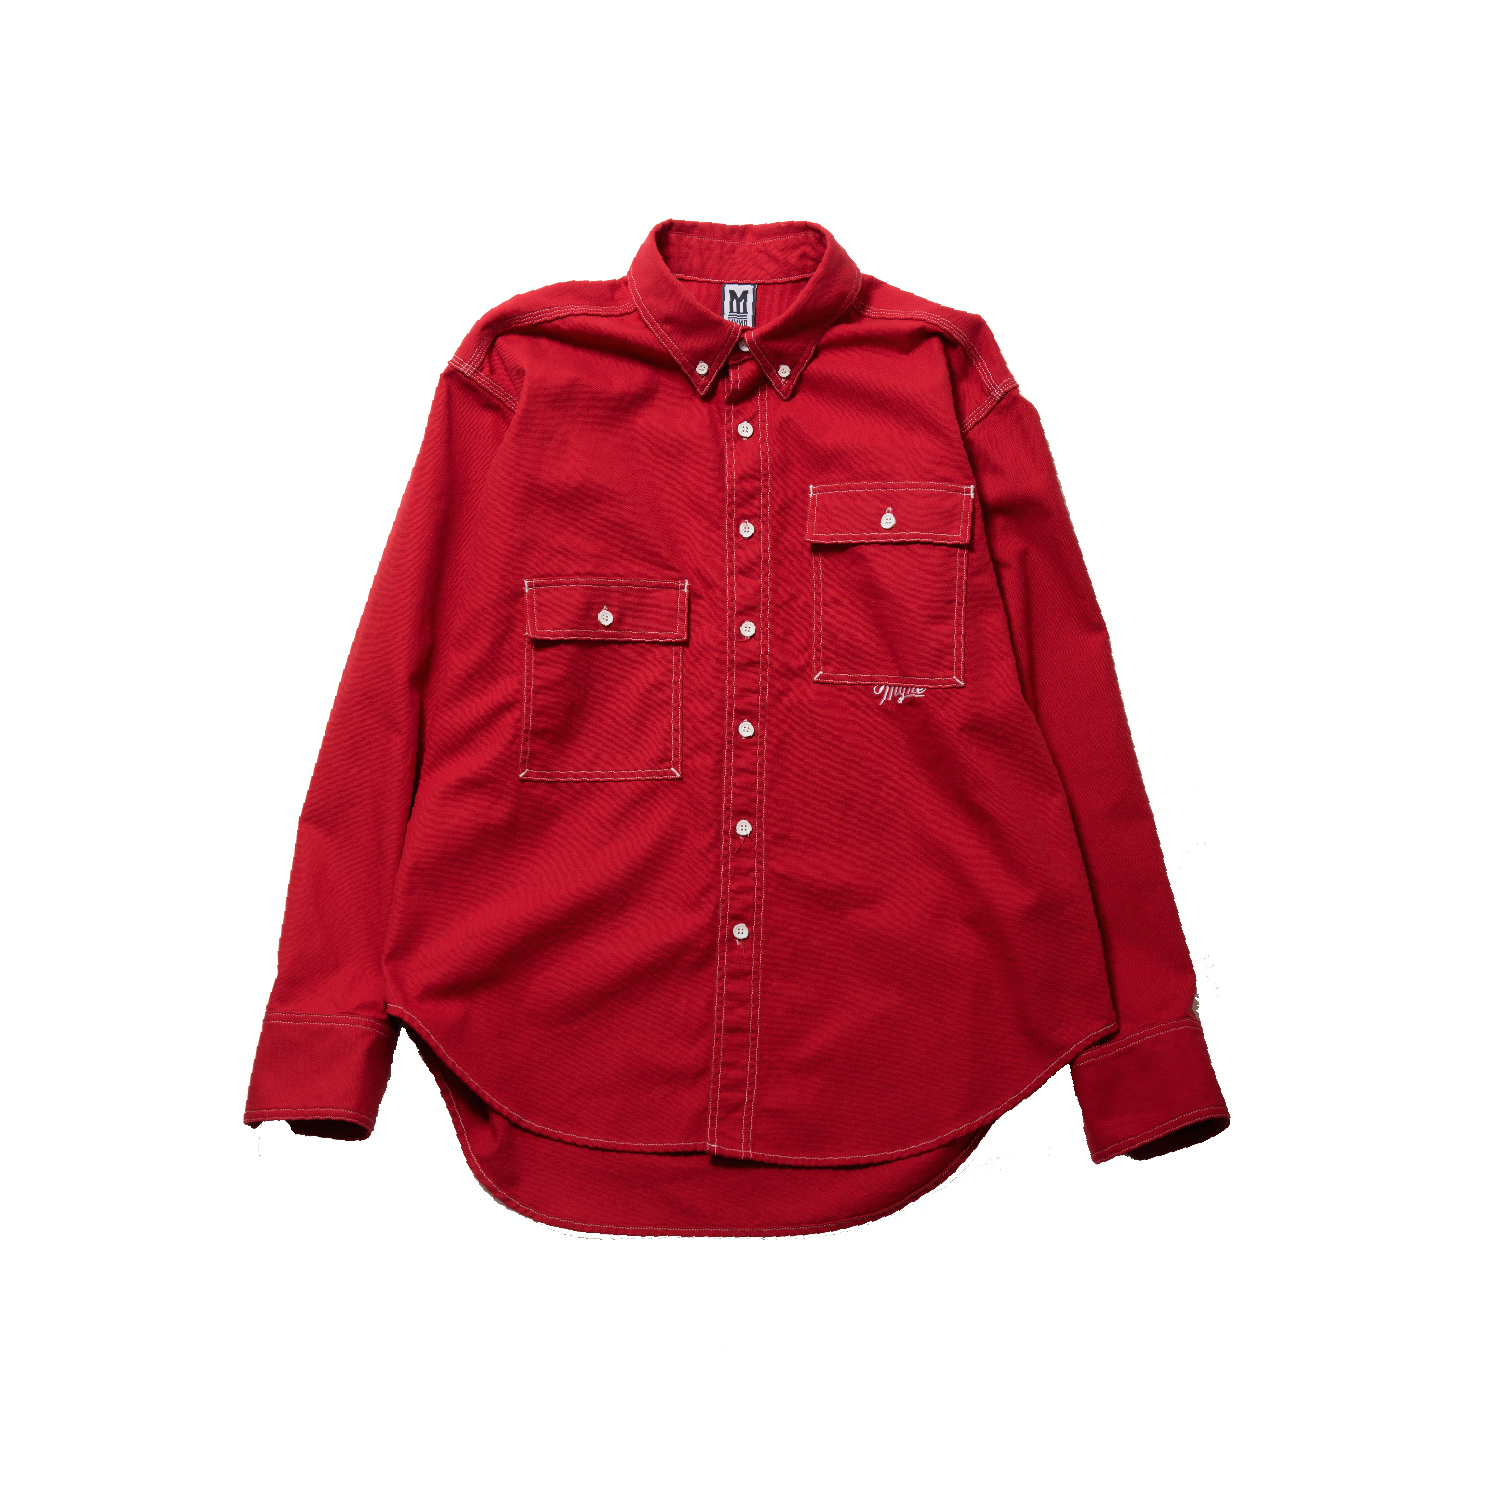 OVER SIZE SHIRT / RED - 画像1